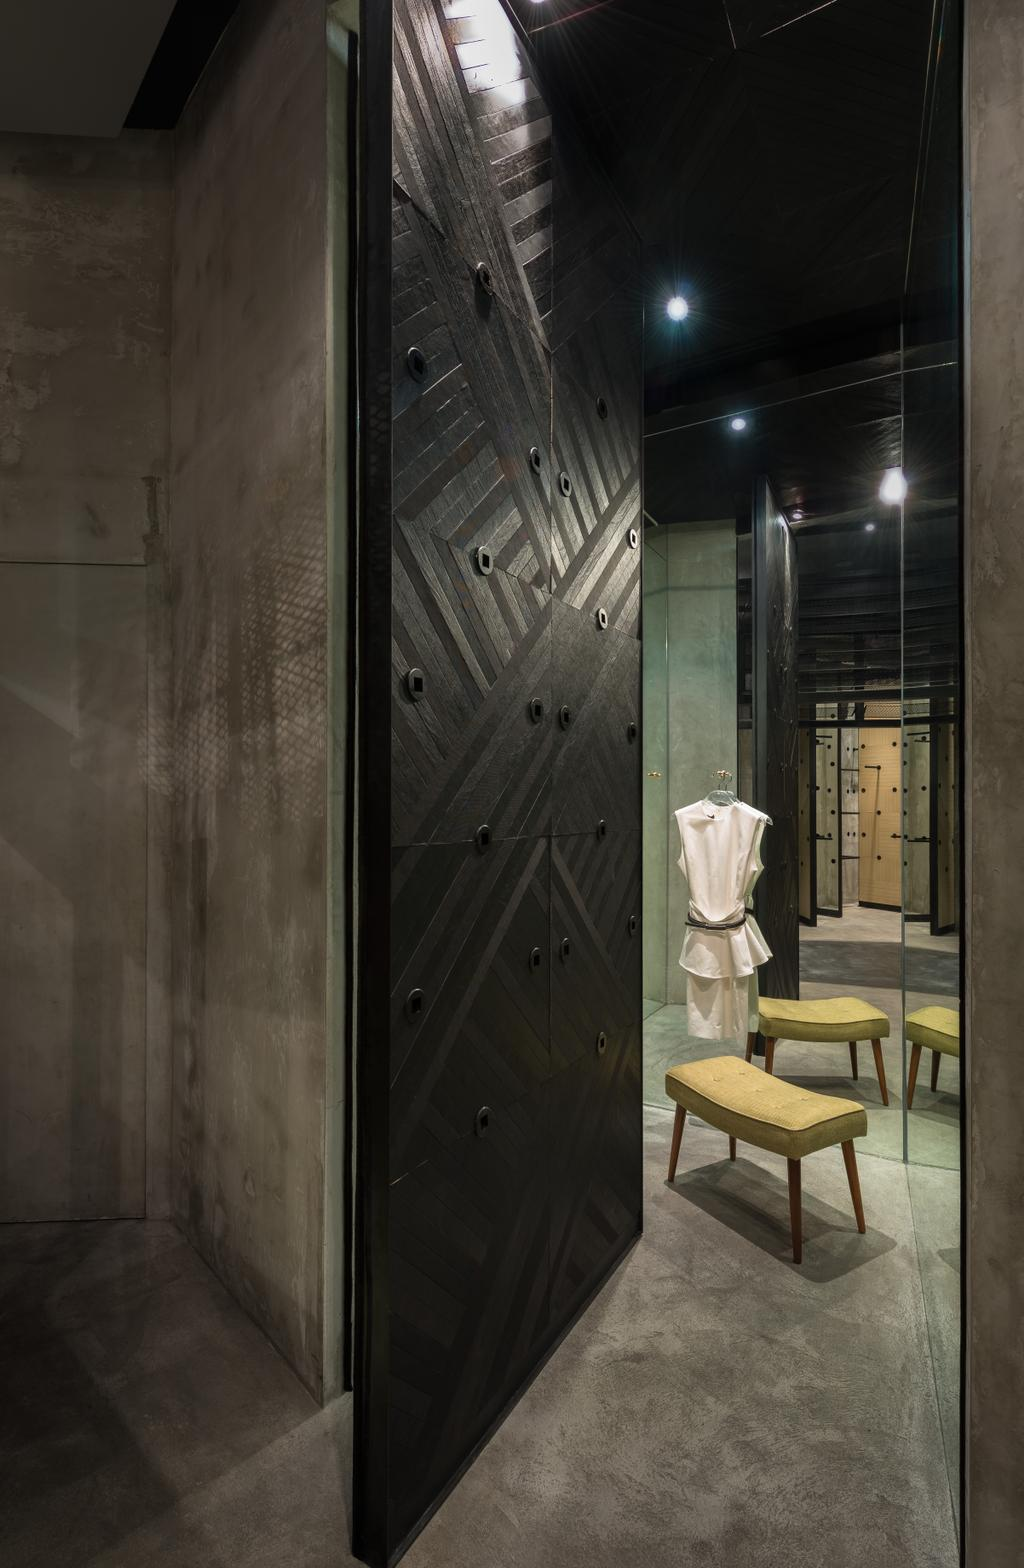 Crocodile Concept Boutique, Commercial, Architect, UPSTAIRS_, Industrial, Human, People, Person, Chair, Furniture